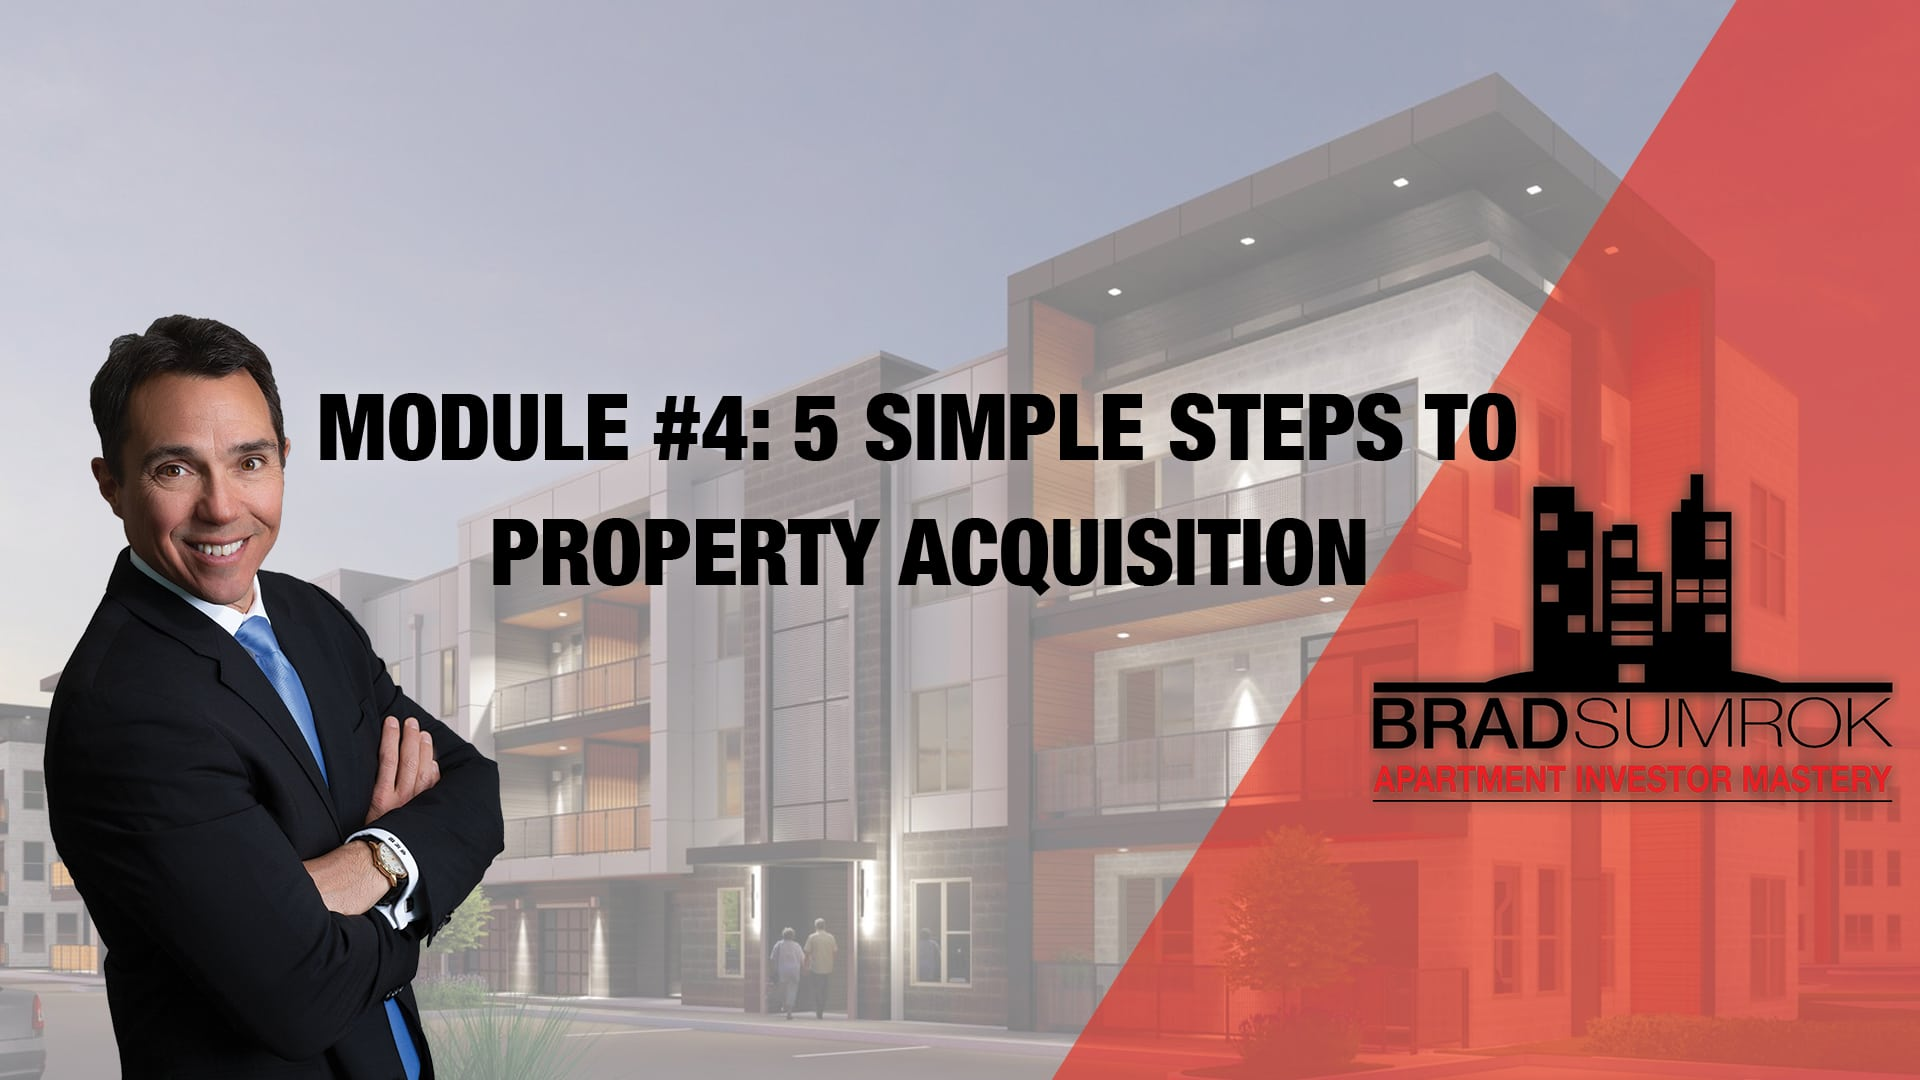 Apartment Investing Module 4 - 5 Simple Steps to Property Acquisition